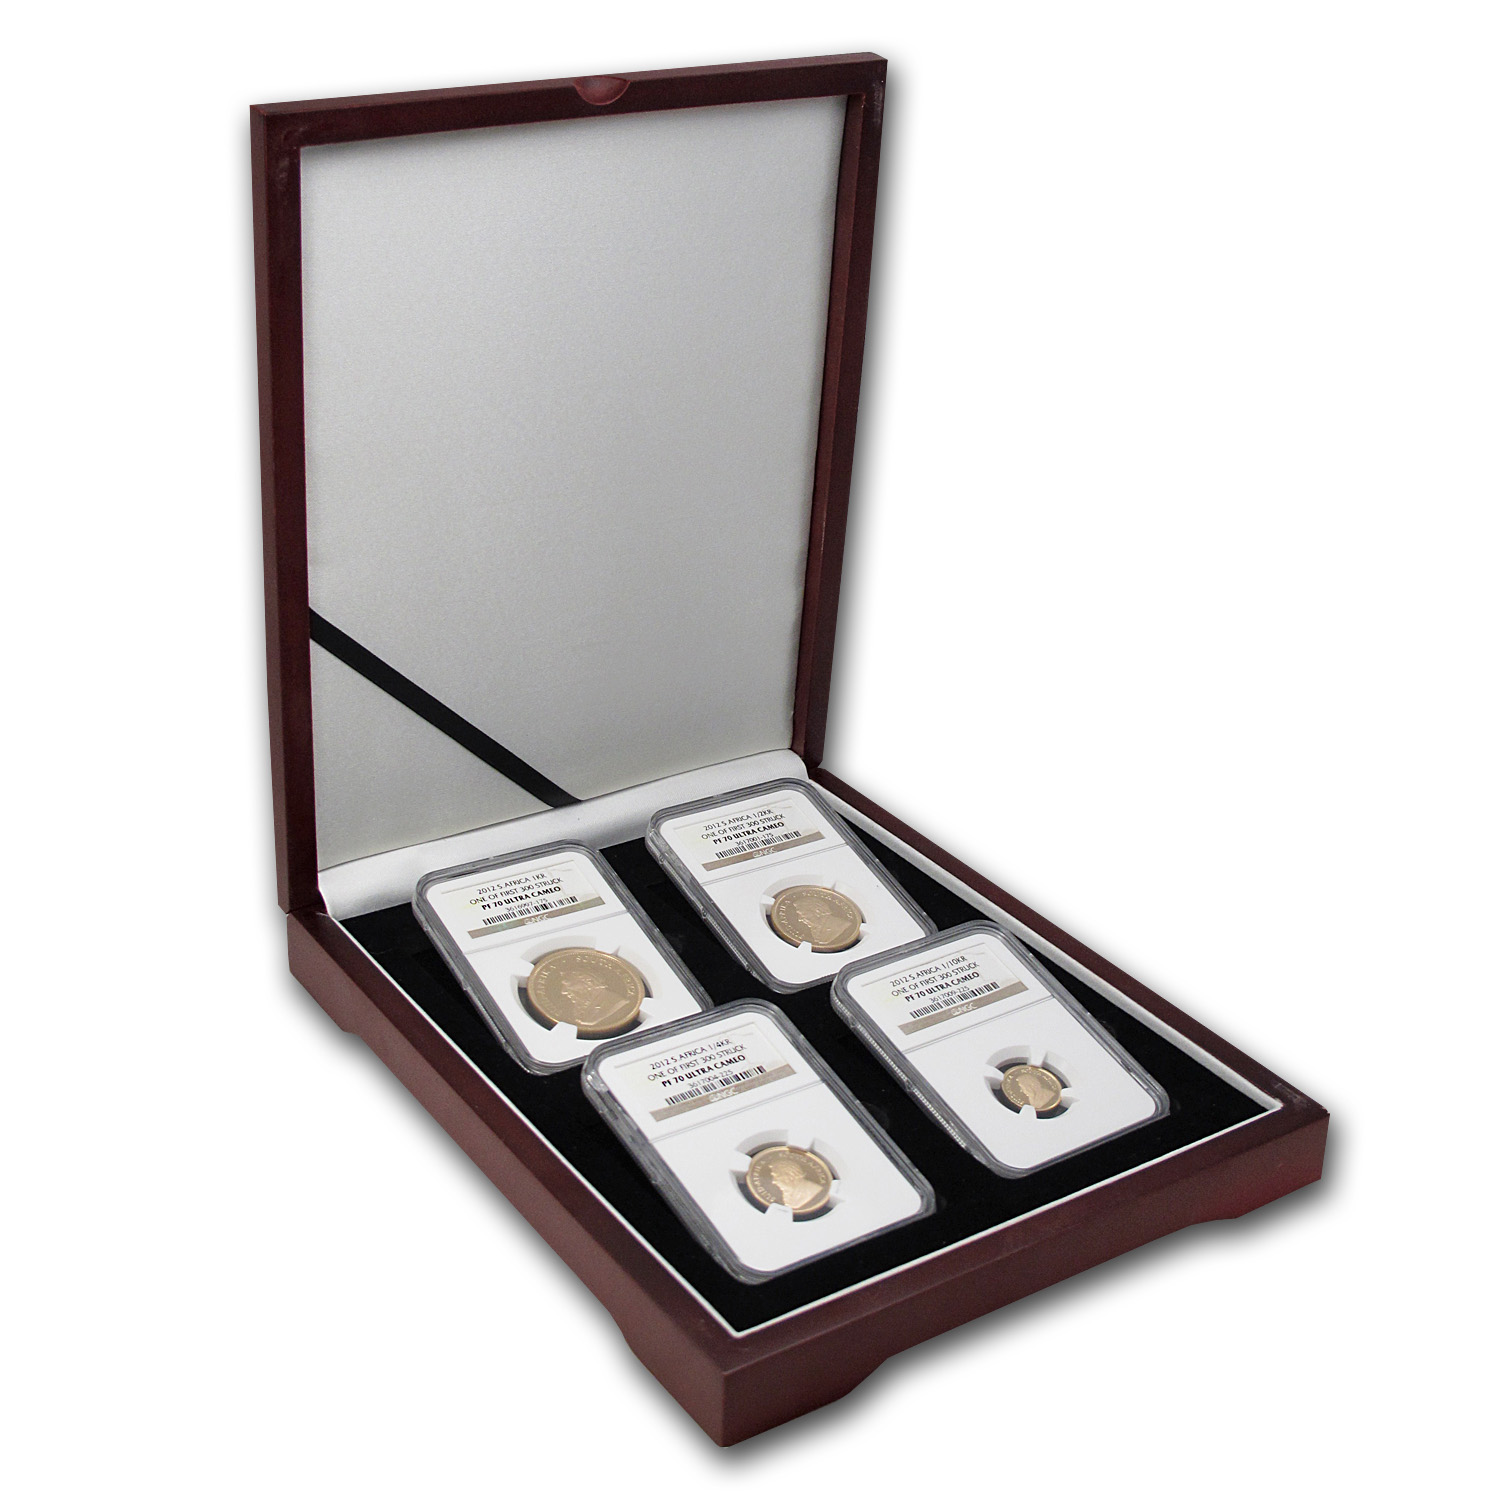 2012 4-Coin Gold South African Krugerrand Proof Set PF-70 NGC